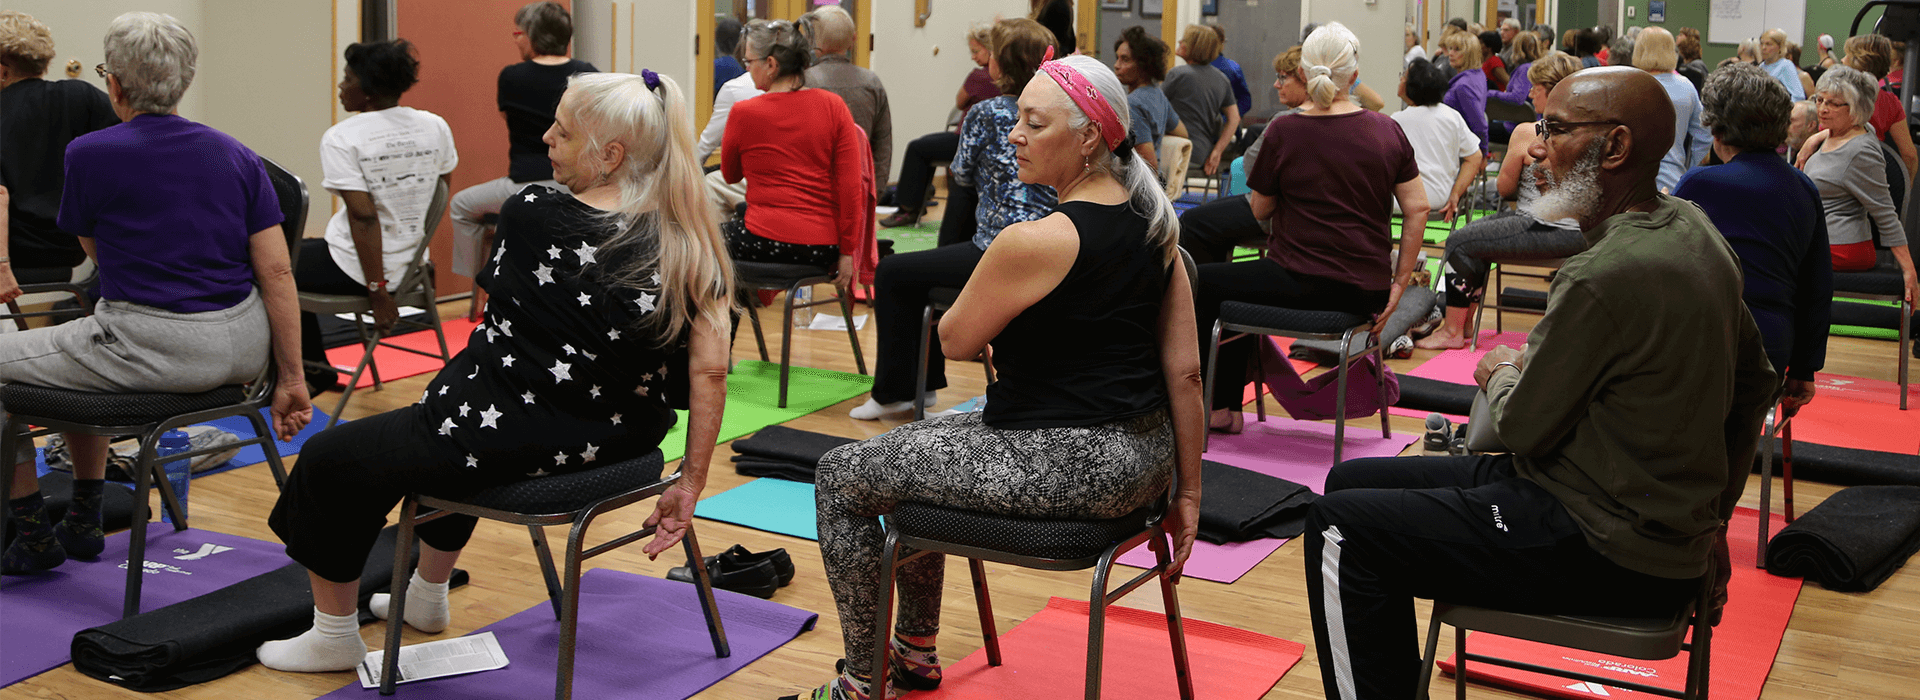 AARP Yoga Retreat